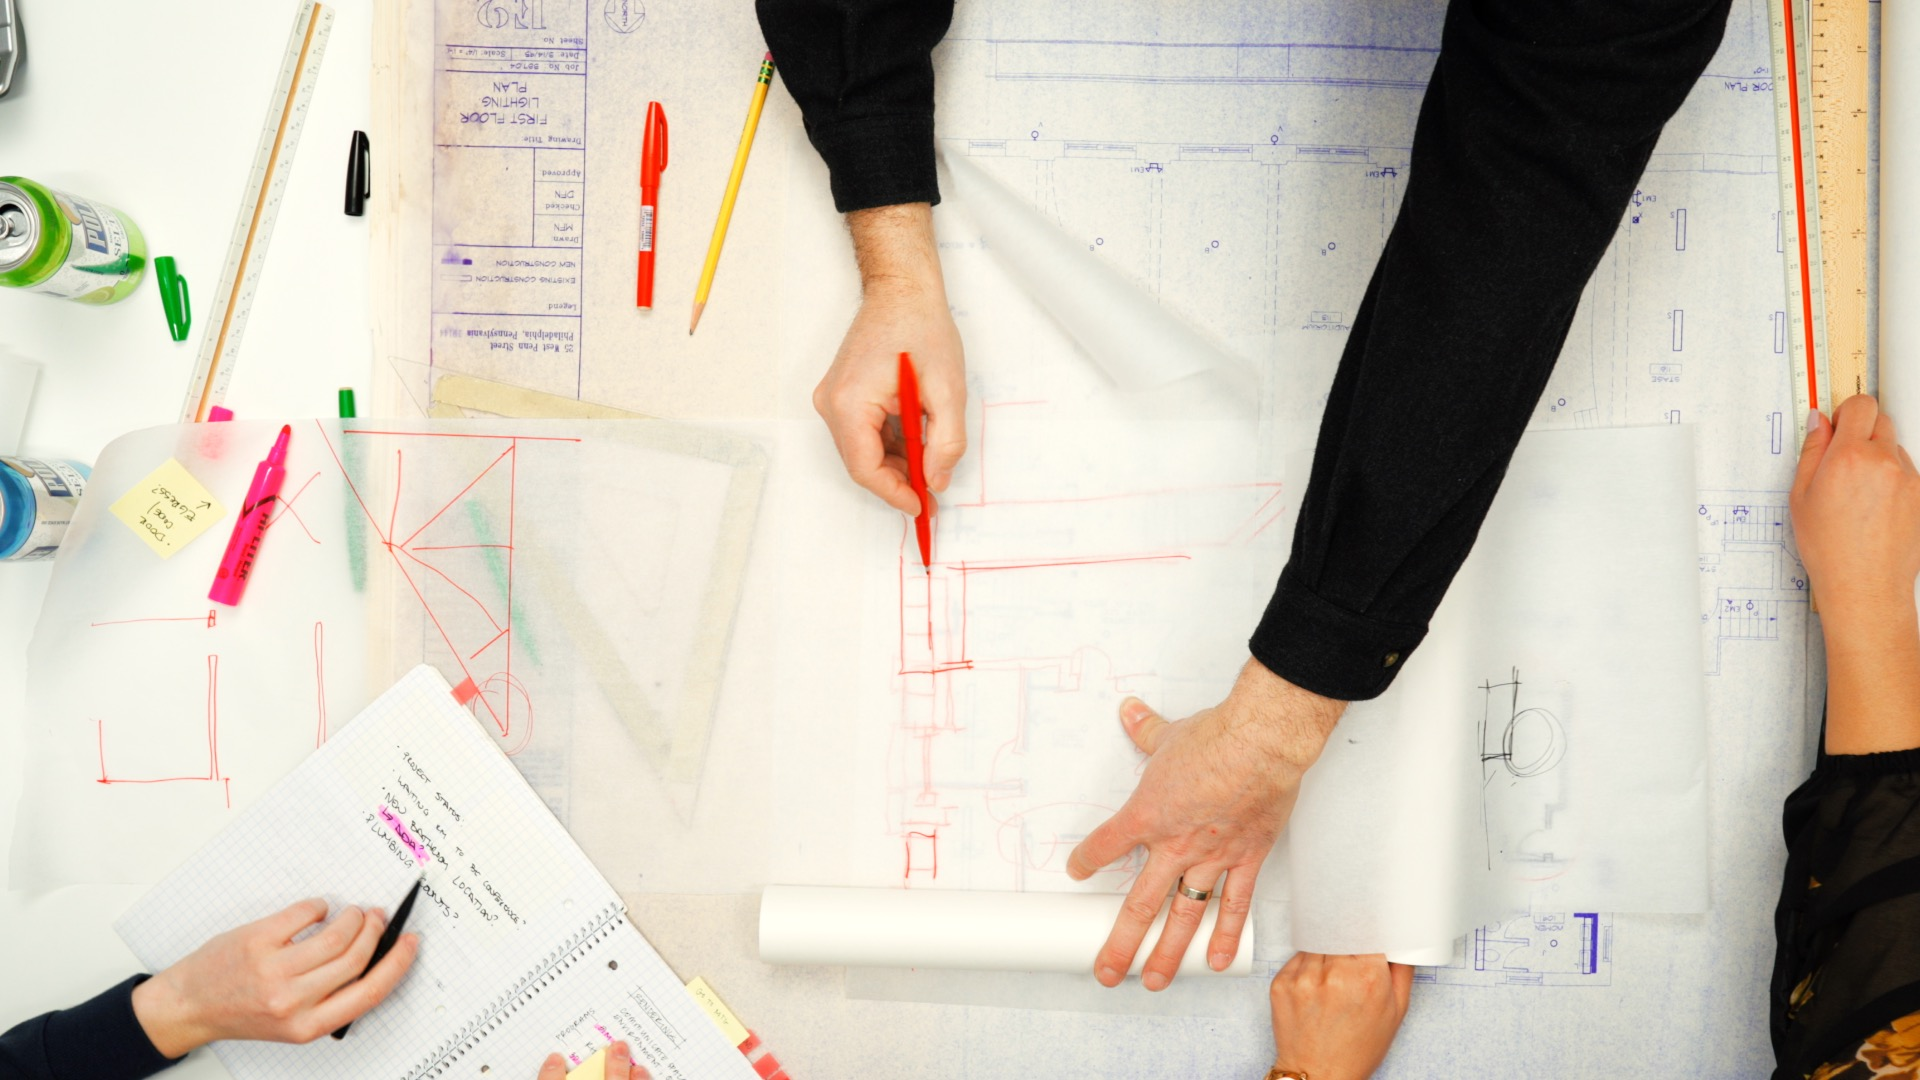 Our services - Project Management Building Information ModelingSpace Planning ProgrammingFurniture Specifications Master PlanningFeasibility Studies Public Art ConsultationsBuilding Survey and Analysis Zoning Analysis